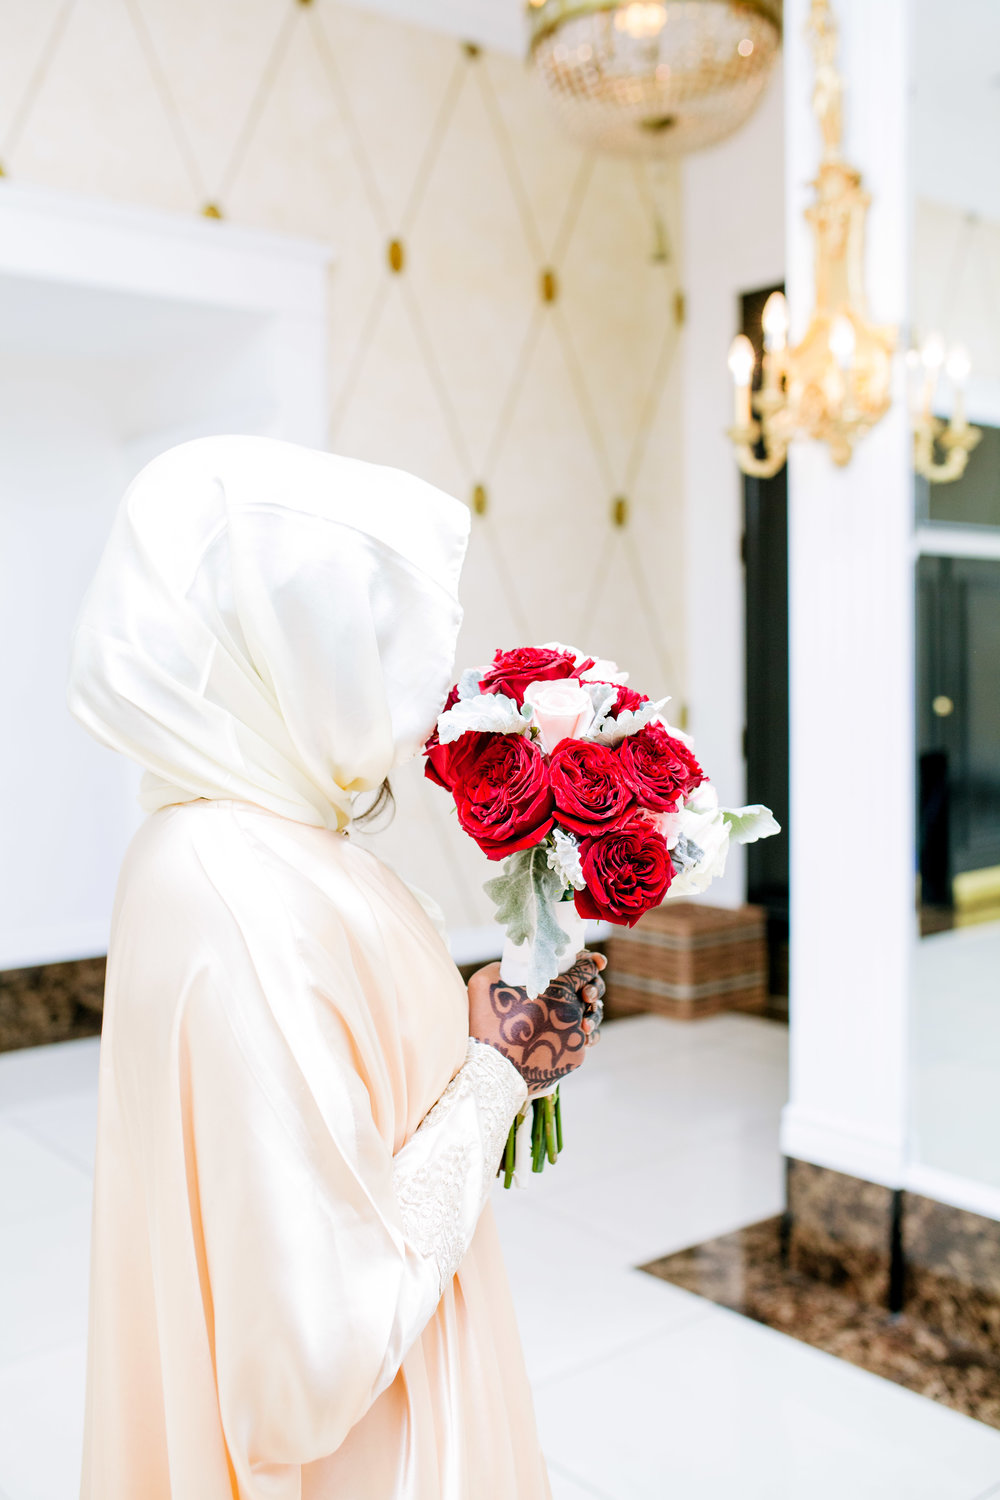 Toronto Wedding Photographer Glam Bright Photos Somali Weddings Habesha Eritrean Indian Kenyan Muslim Arab Ontario Ottawa Munaluchi Bride Karimah Gheddai Photography Eritrean Ethiopian International Destination Verdi Convention Airy necklace bridal shoes Etobicoke pink African Pakistani Golden Gold decor